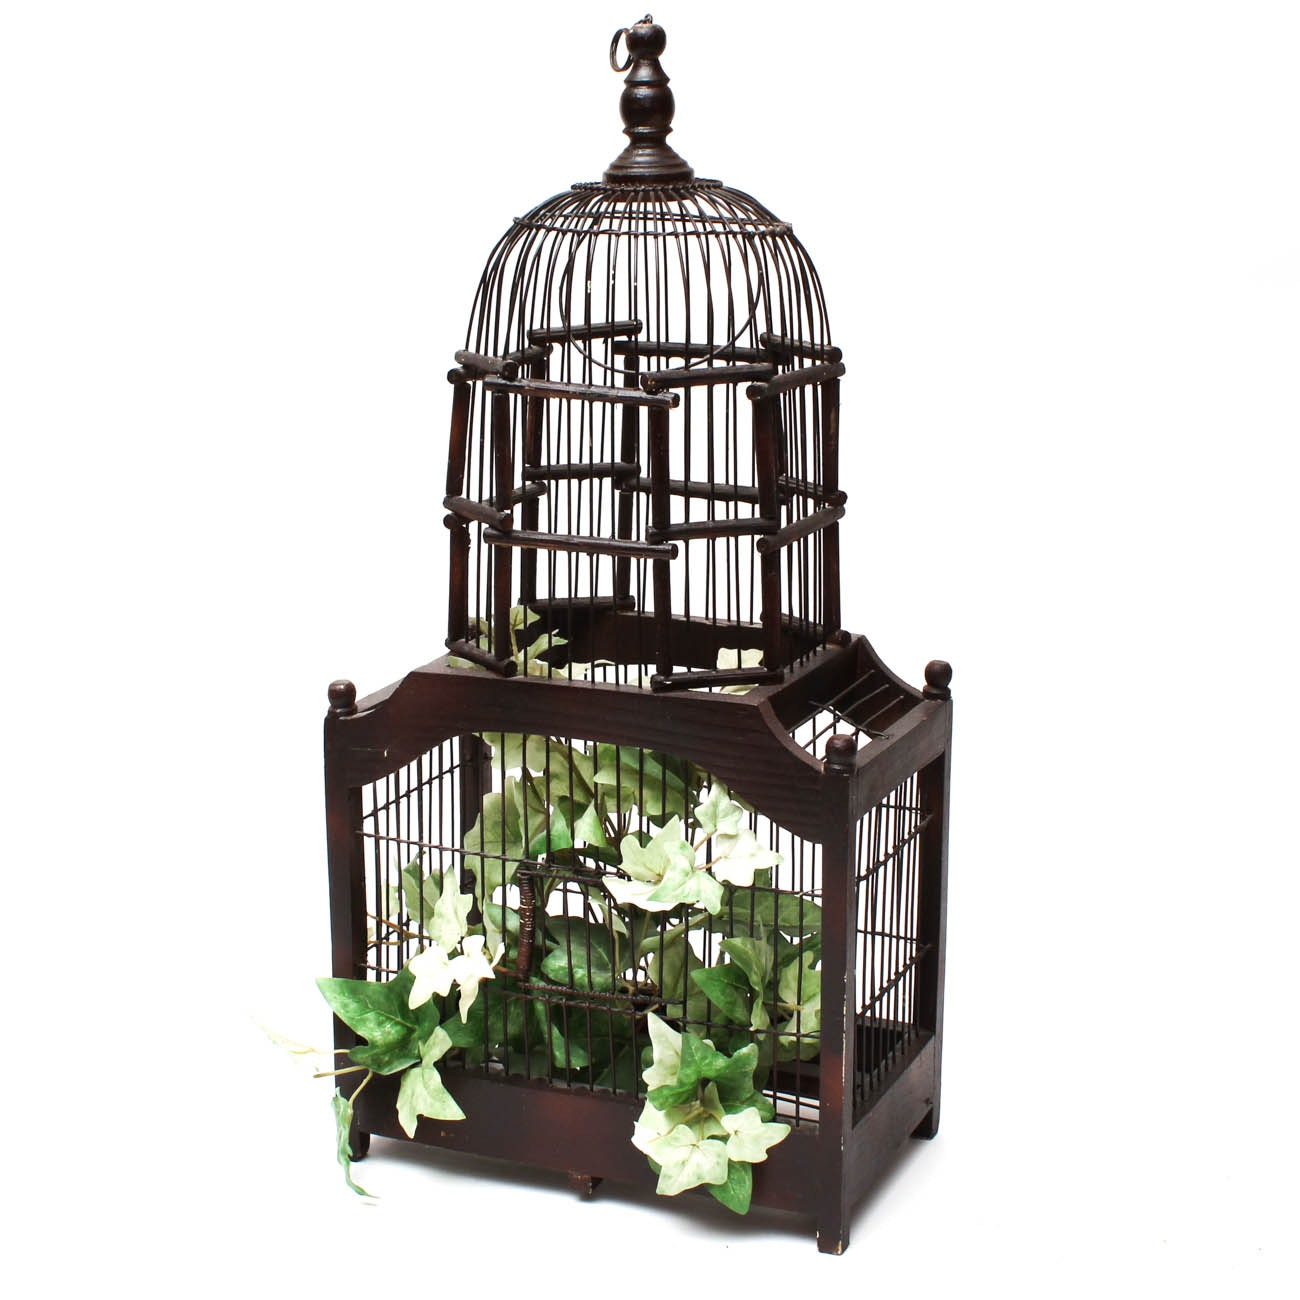 Decorative Victorian Style Wooden Birdcage with Faux Plants